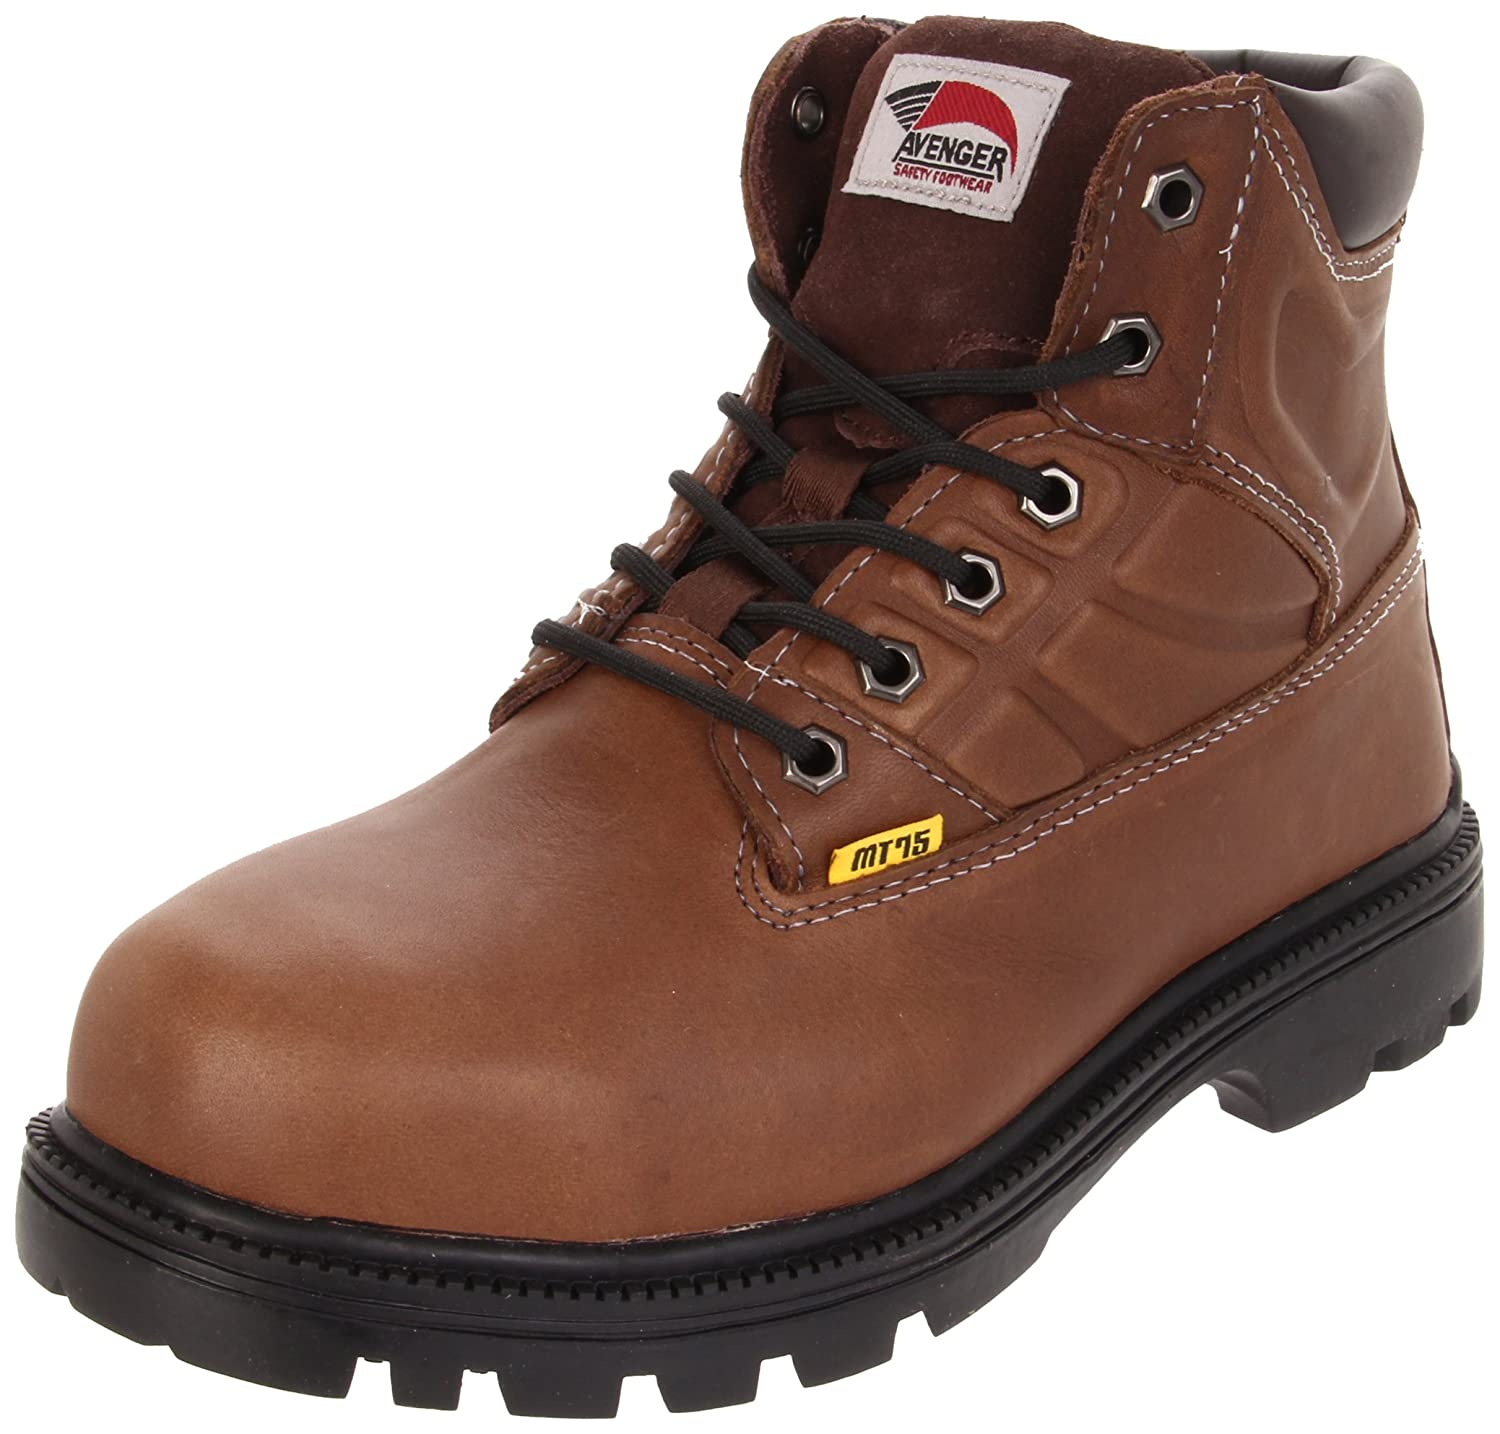 Avenger Safety FootwearメンズMet Guard Boot B005BKDBUA 12 2E US|ブラウン ブラウン 12 2E US